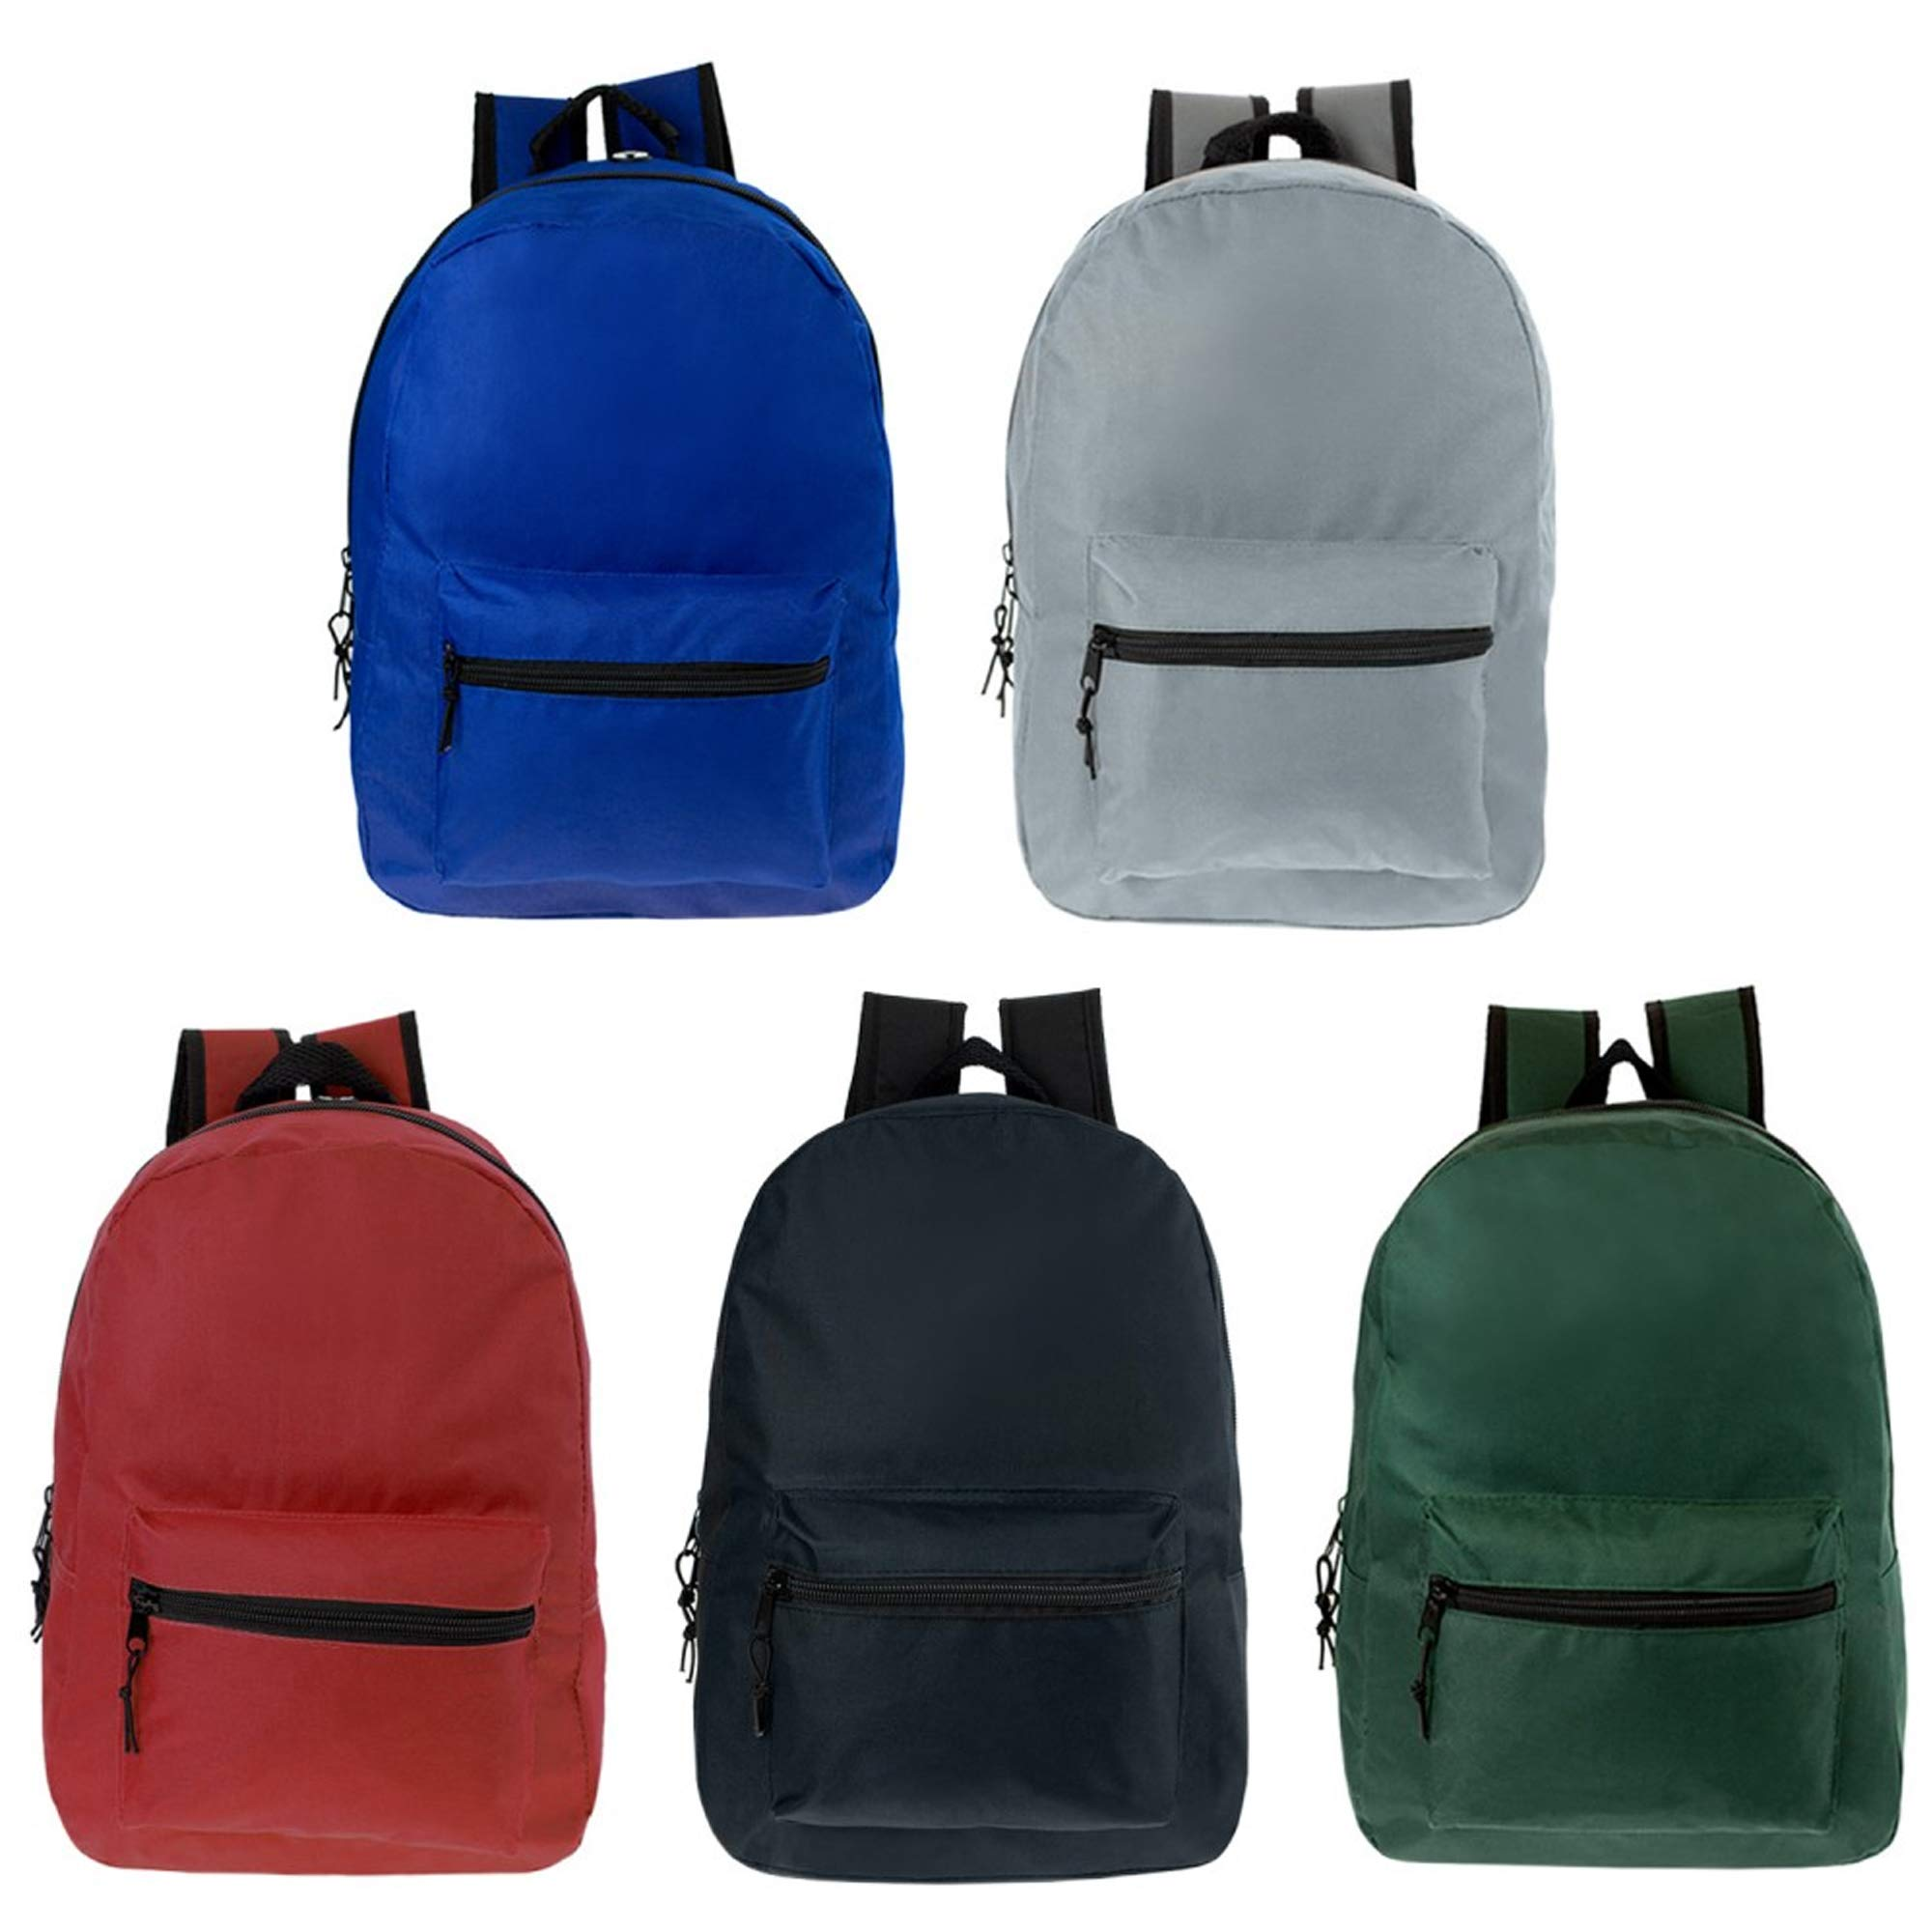 17 Inch Wholesale Classic Backpack - Bulk Case of 24 Bookbags (5 Solid Colors) by Arctic Star